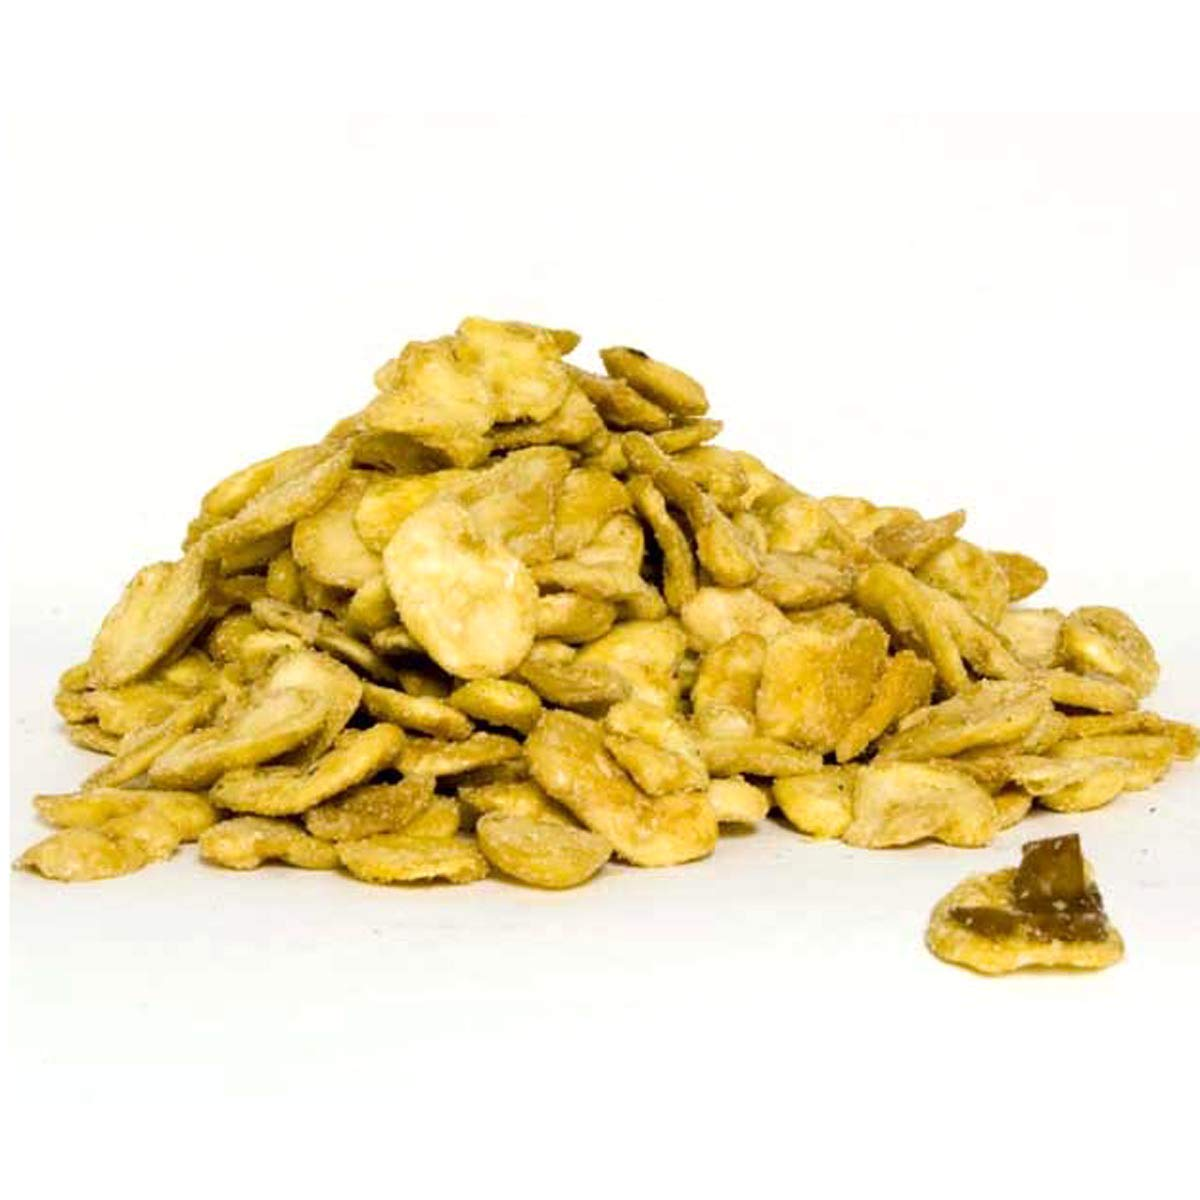 FirstChoiceCandy Fava Beans (Fried And Salted, 2LB)